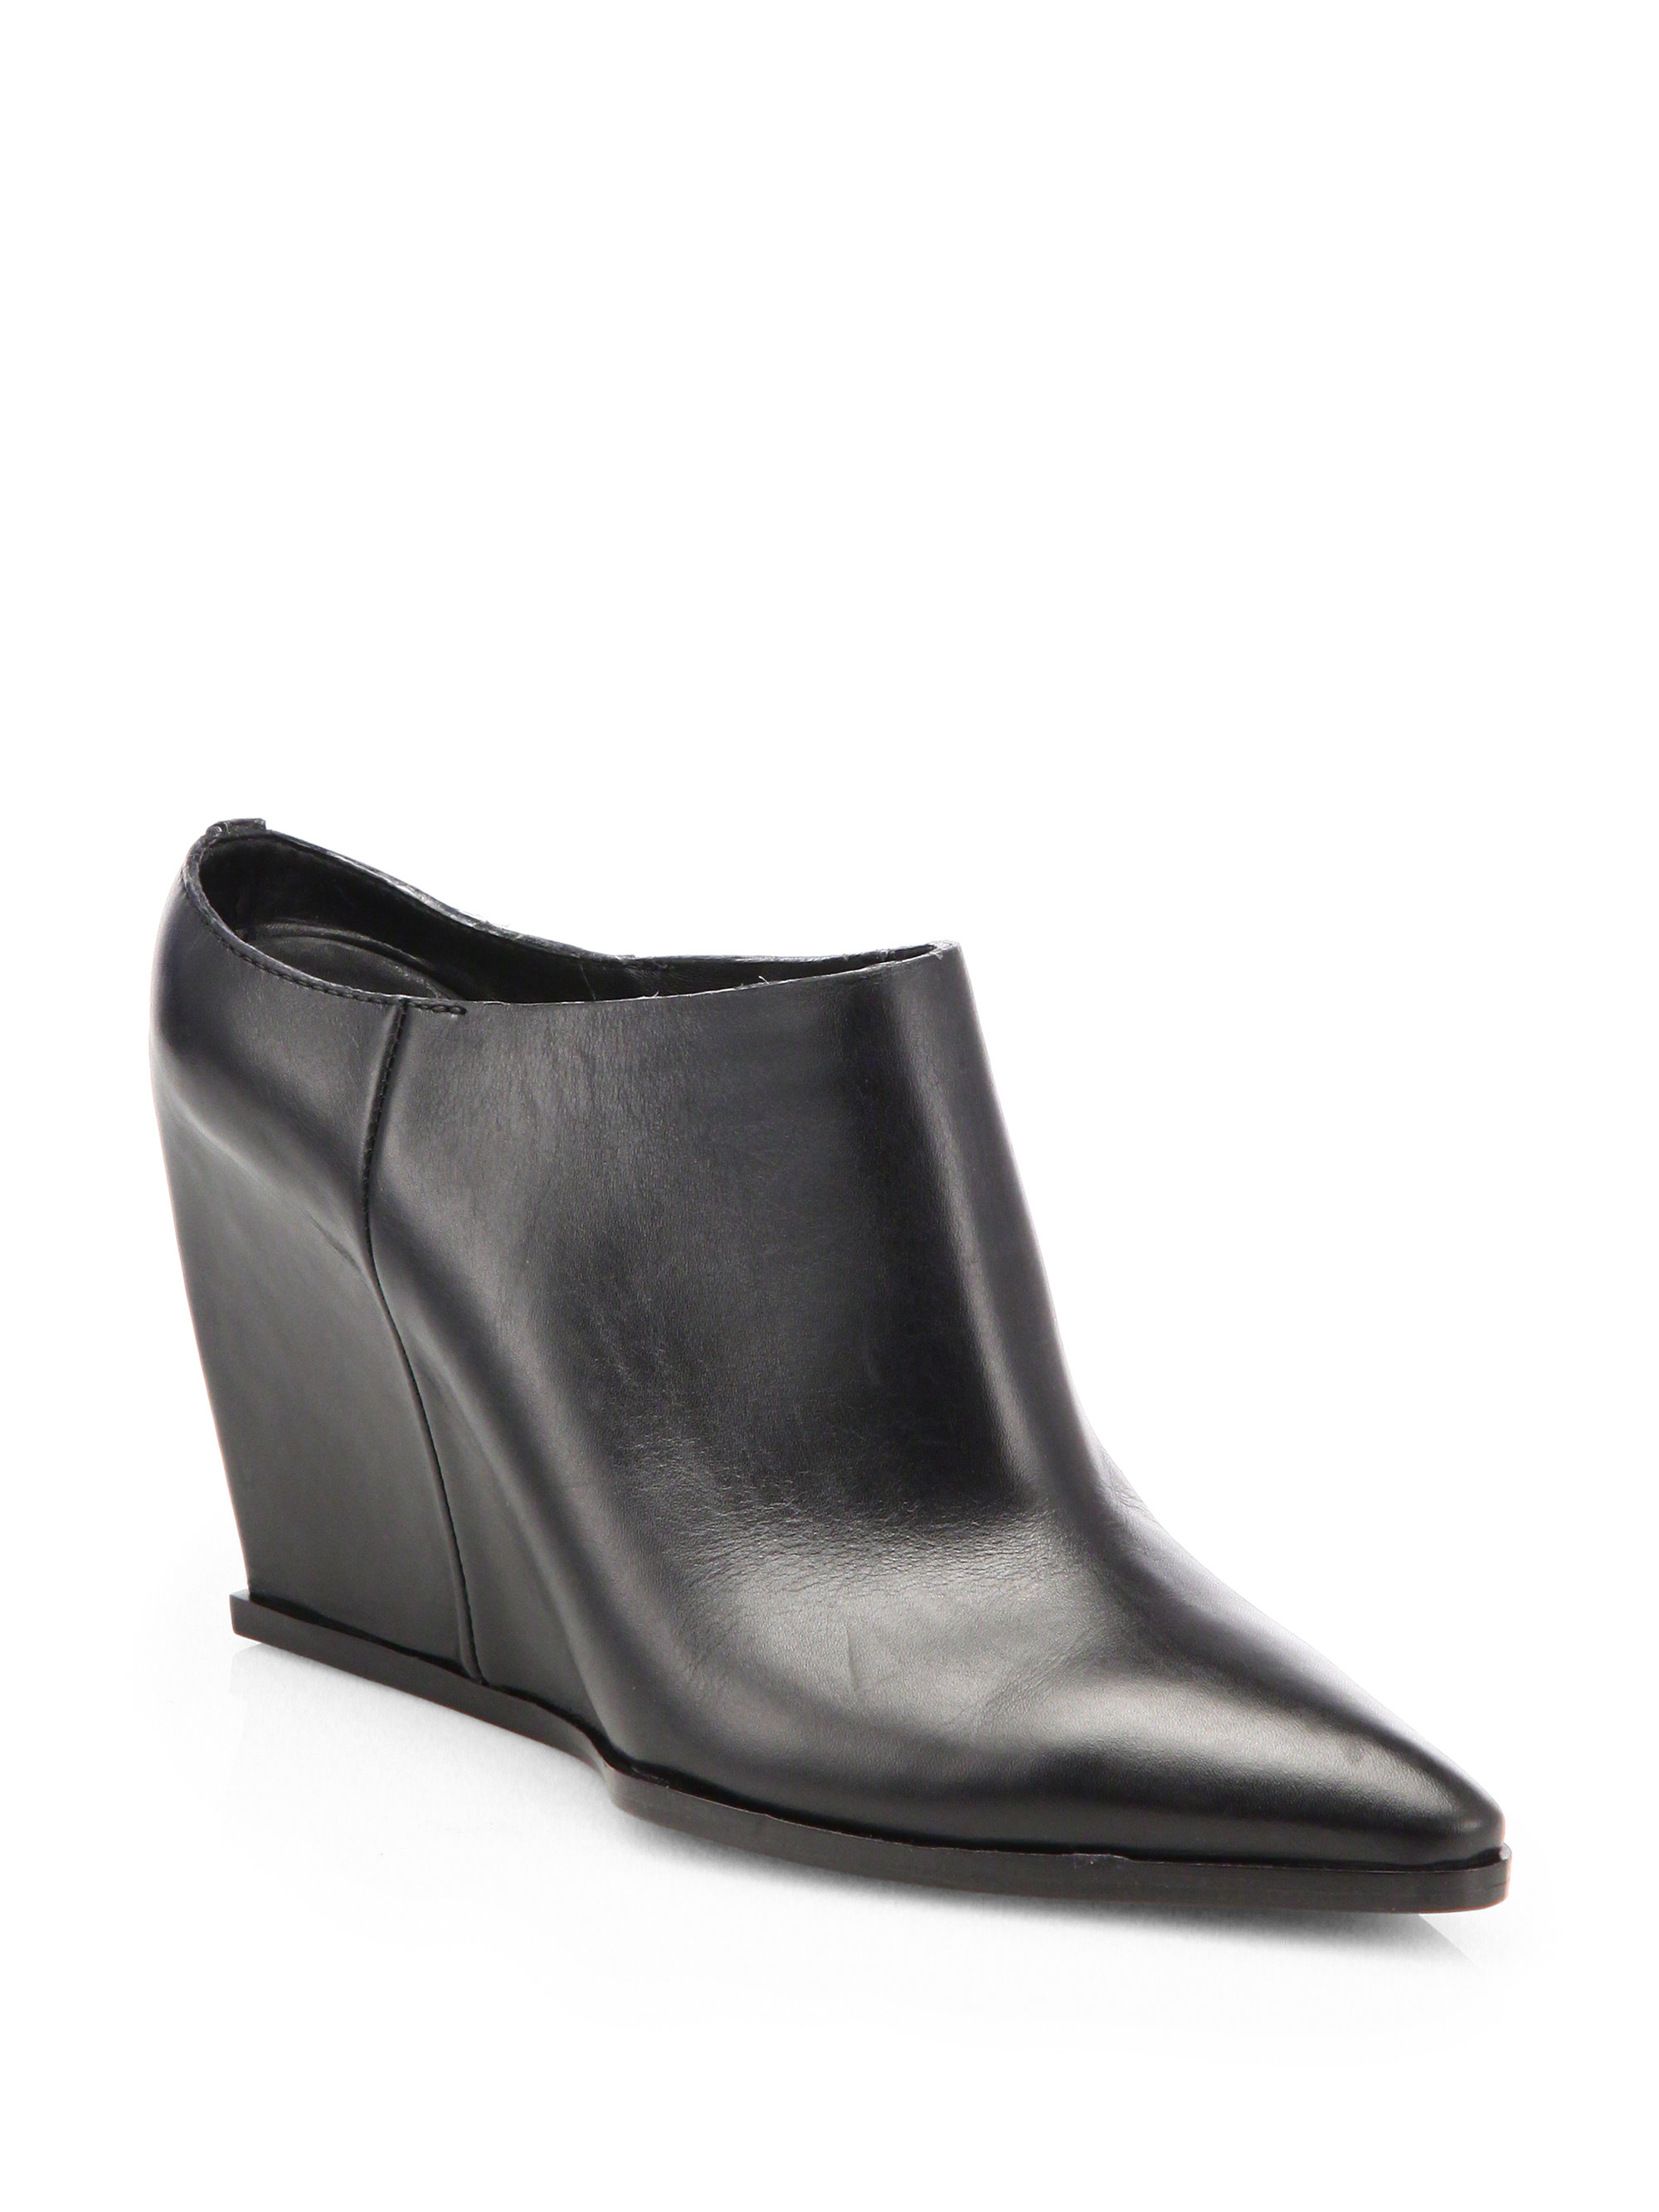 Lyst Costume National Leather Point Toe Wedge Mules In Black